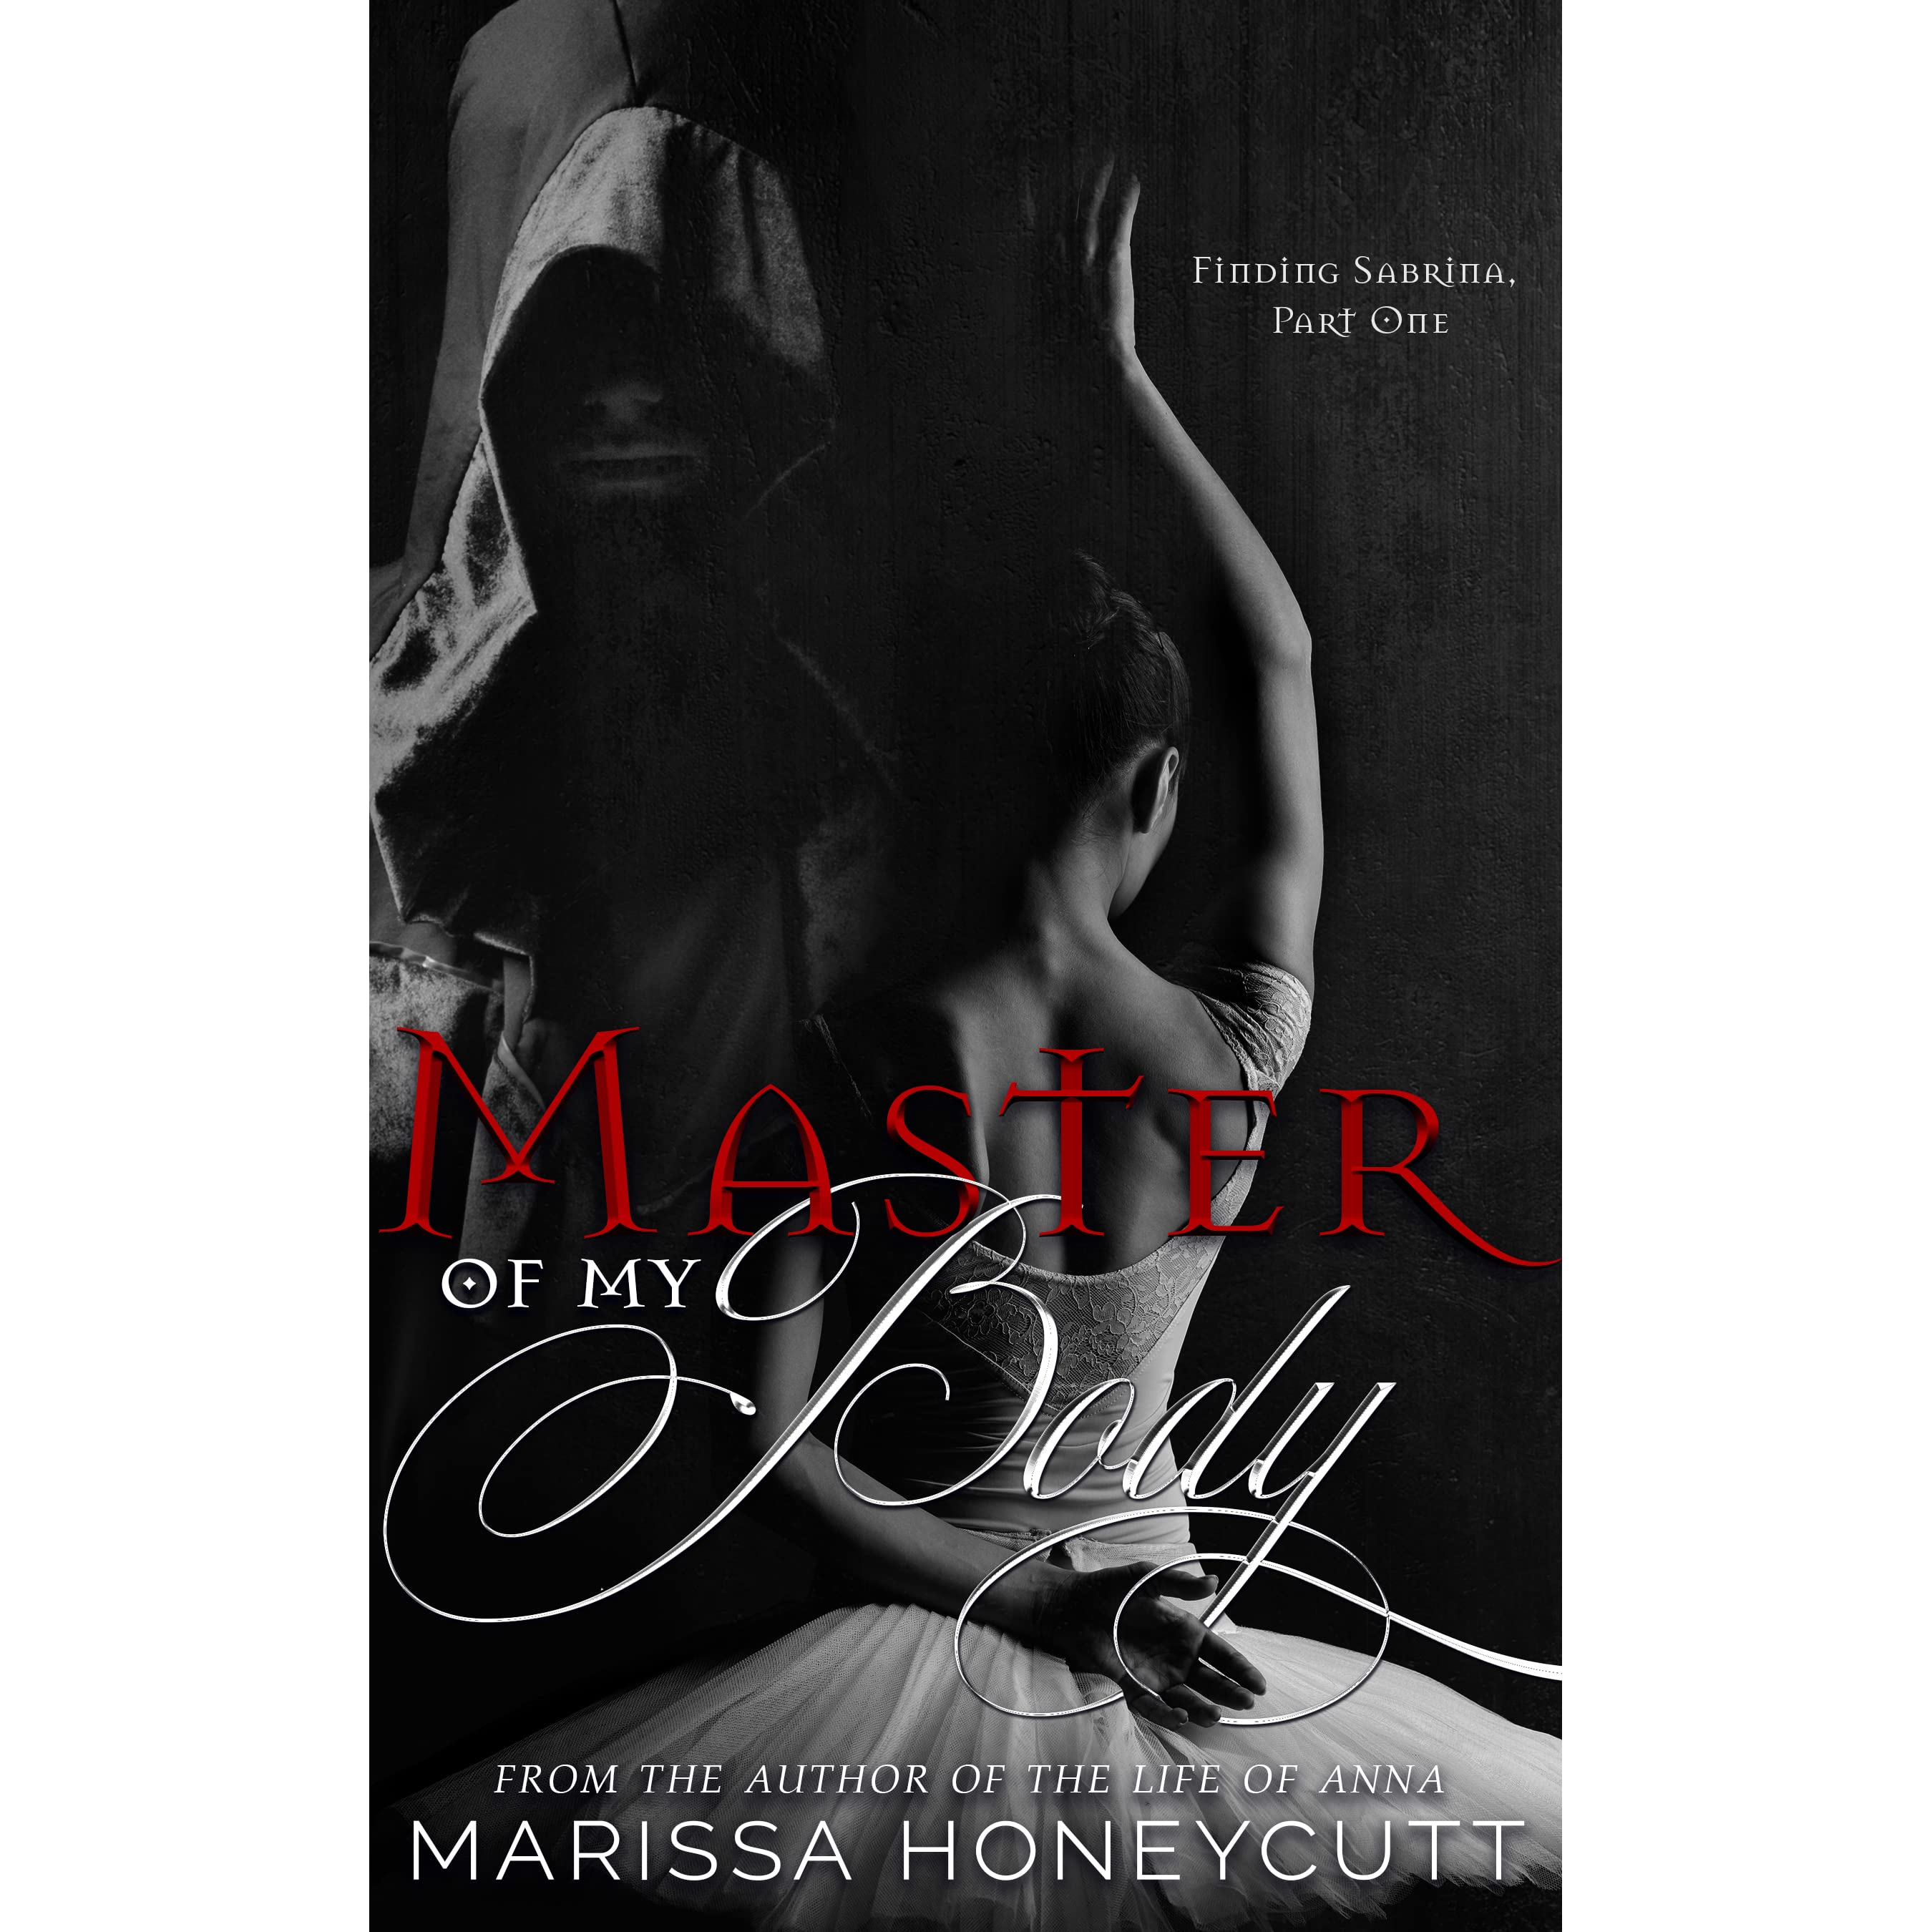 Ruthless the seraphim series book 2 ebook post apocalyptic suspense array master of my body finding sabrina 1 by marissa honeycutt rh goodreads fandeluxe Images